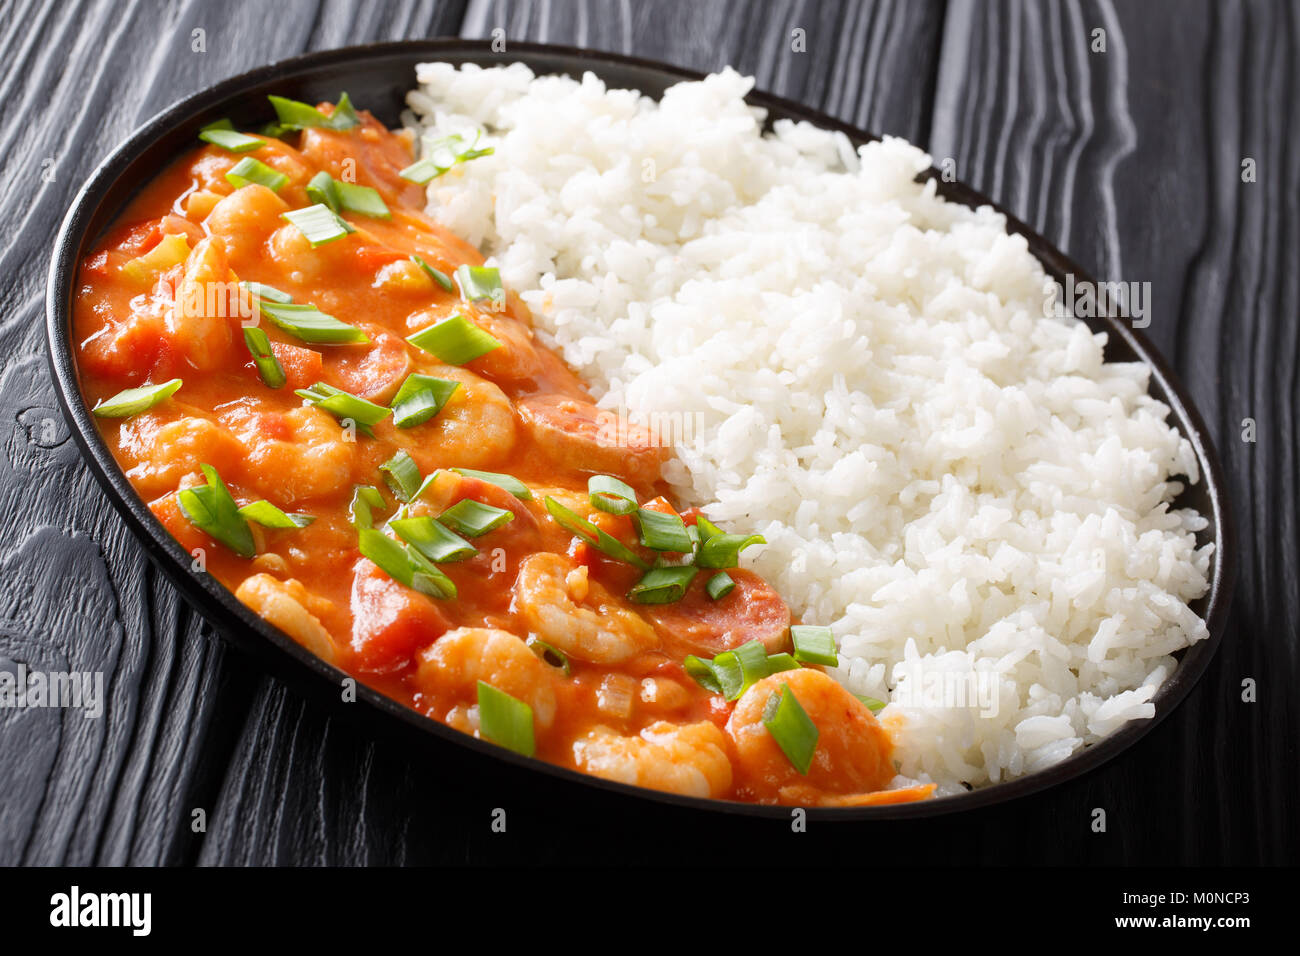 Creole food: spicy gumbo with prawns, sausage and rice close-up on a plate on a table. horizontal - Stock Image